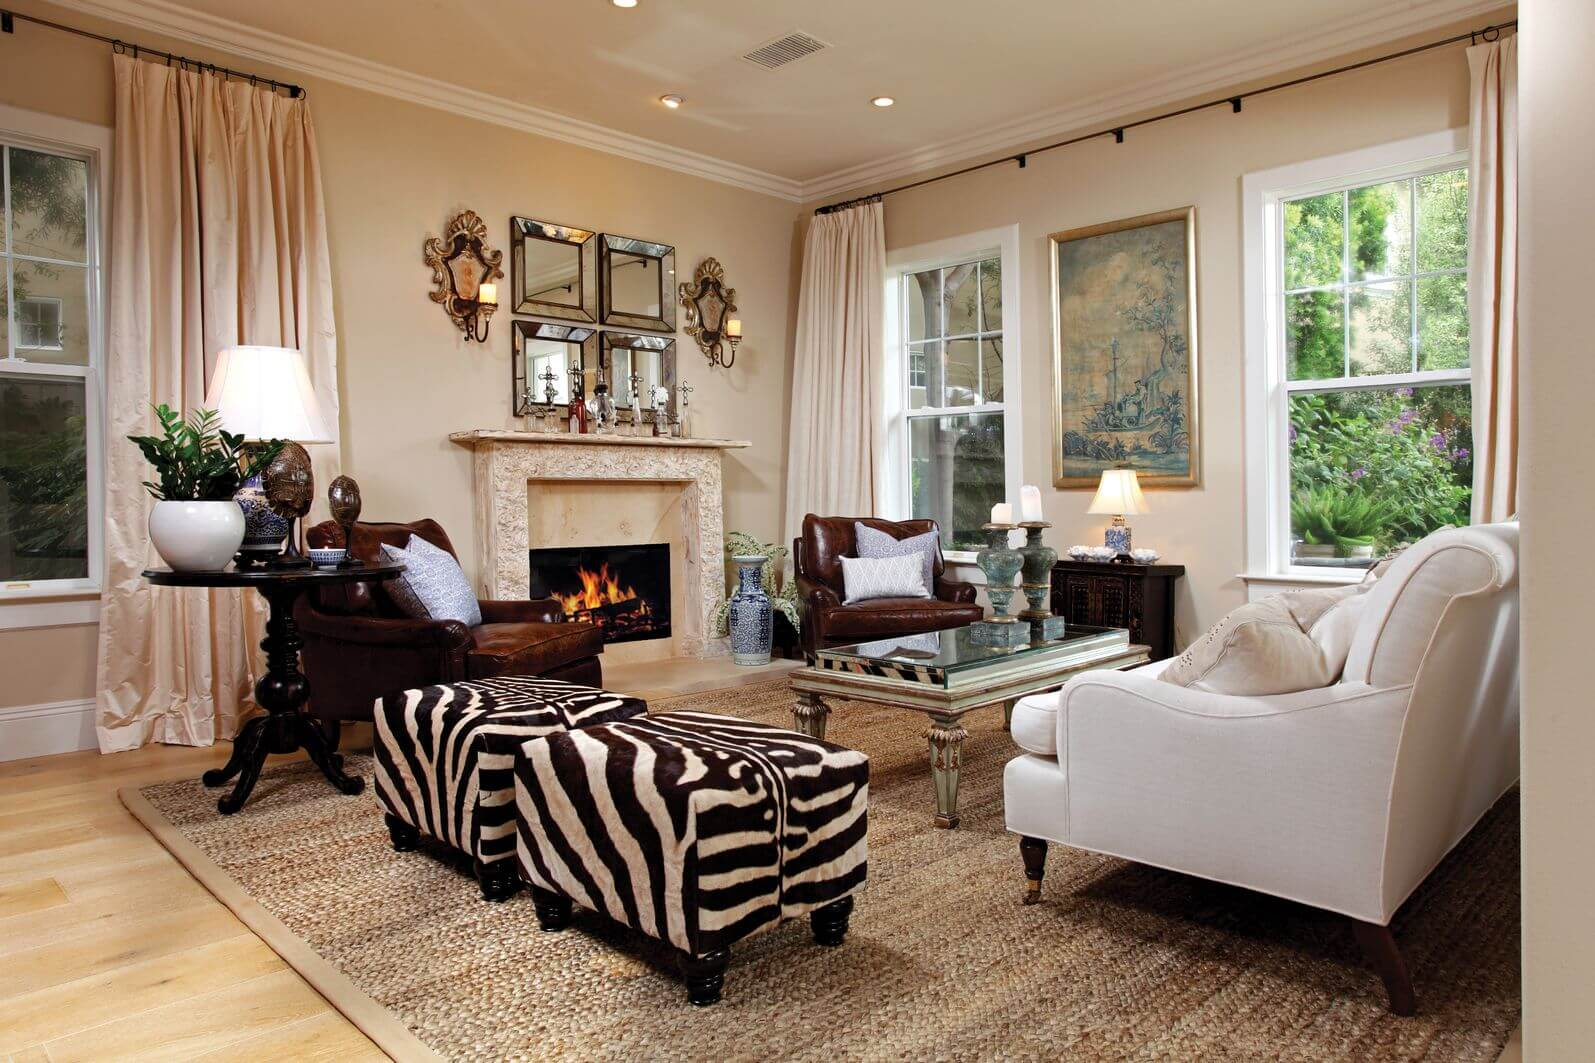 Larger formal living room incorporating zebra print with two identical zebra print ottomans off to the side of the main seating which includes a white sofa, two ruby red armchairs, ornate coffee table all surrounding an ornate fireplace.